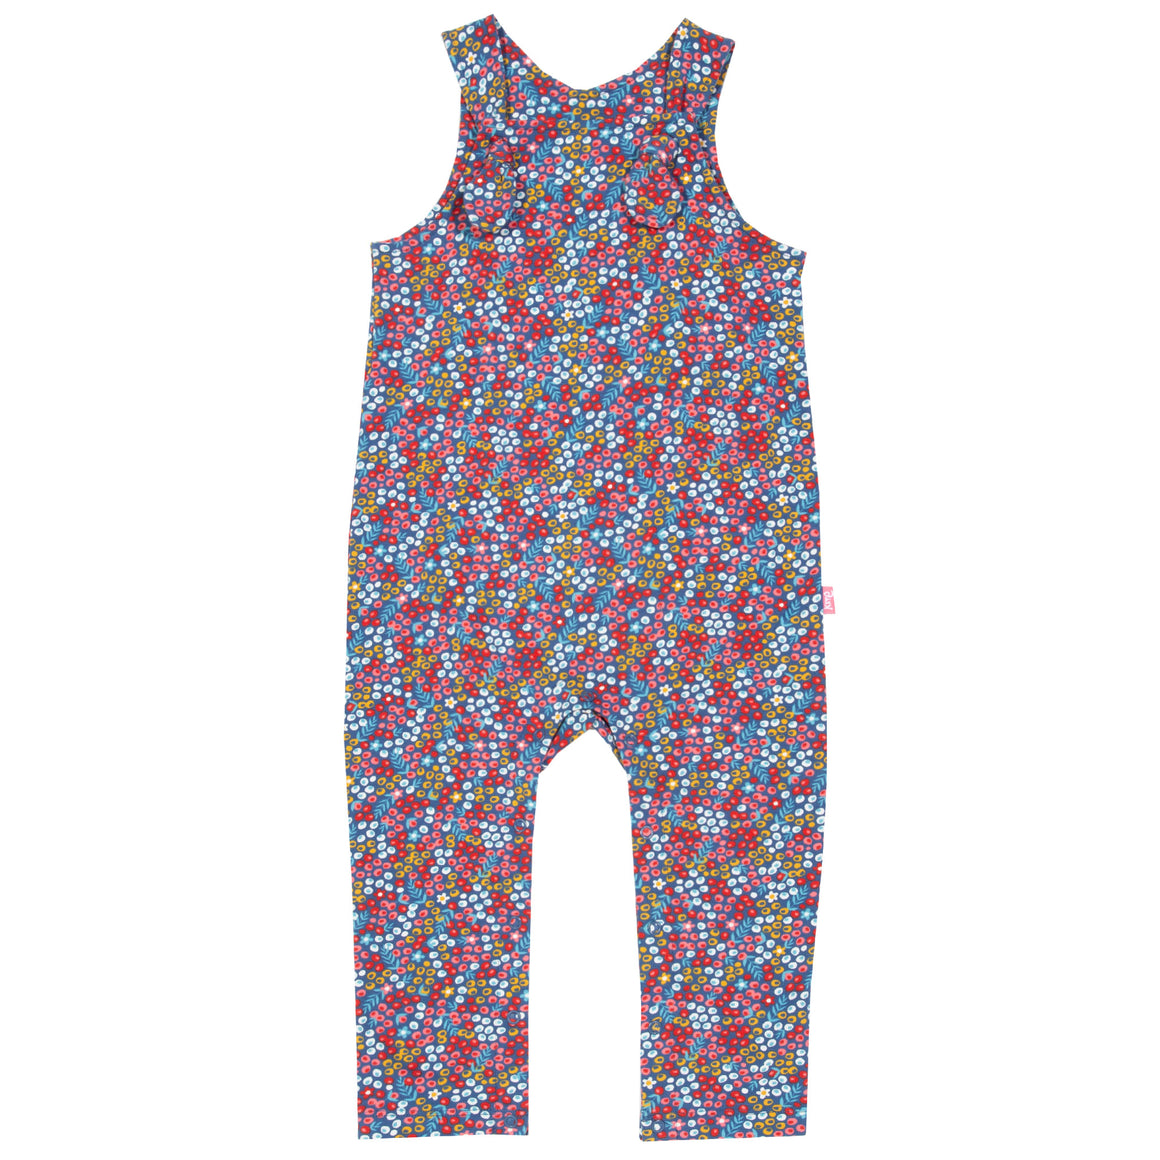 Berry Ditsy dungarees